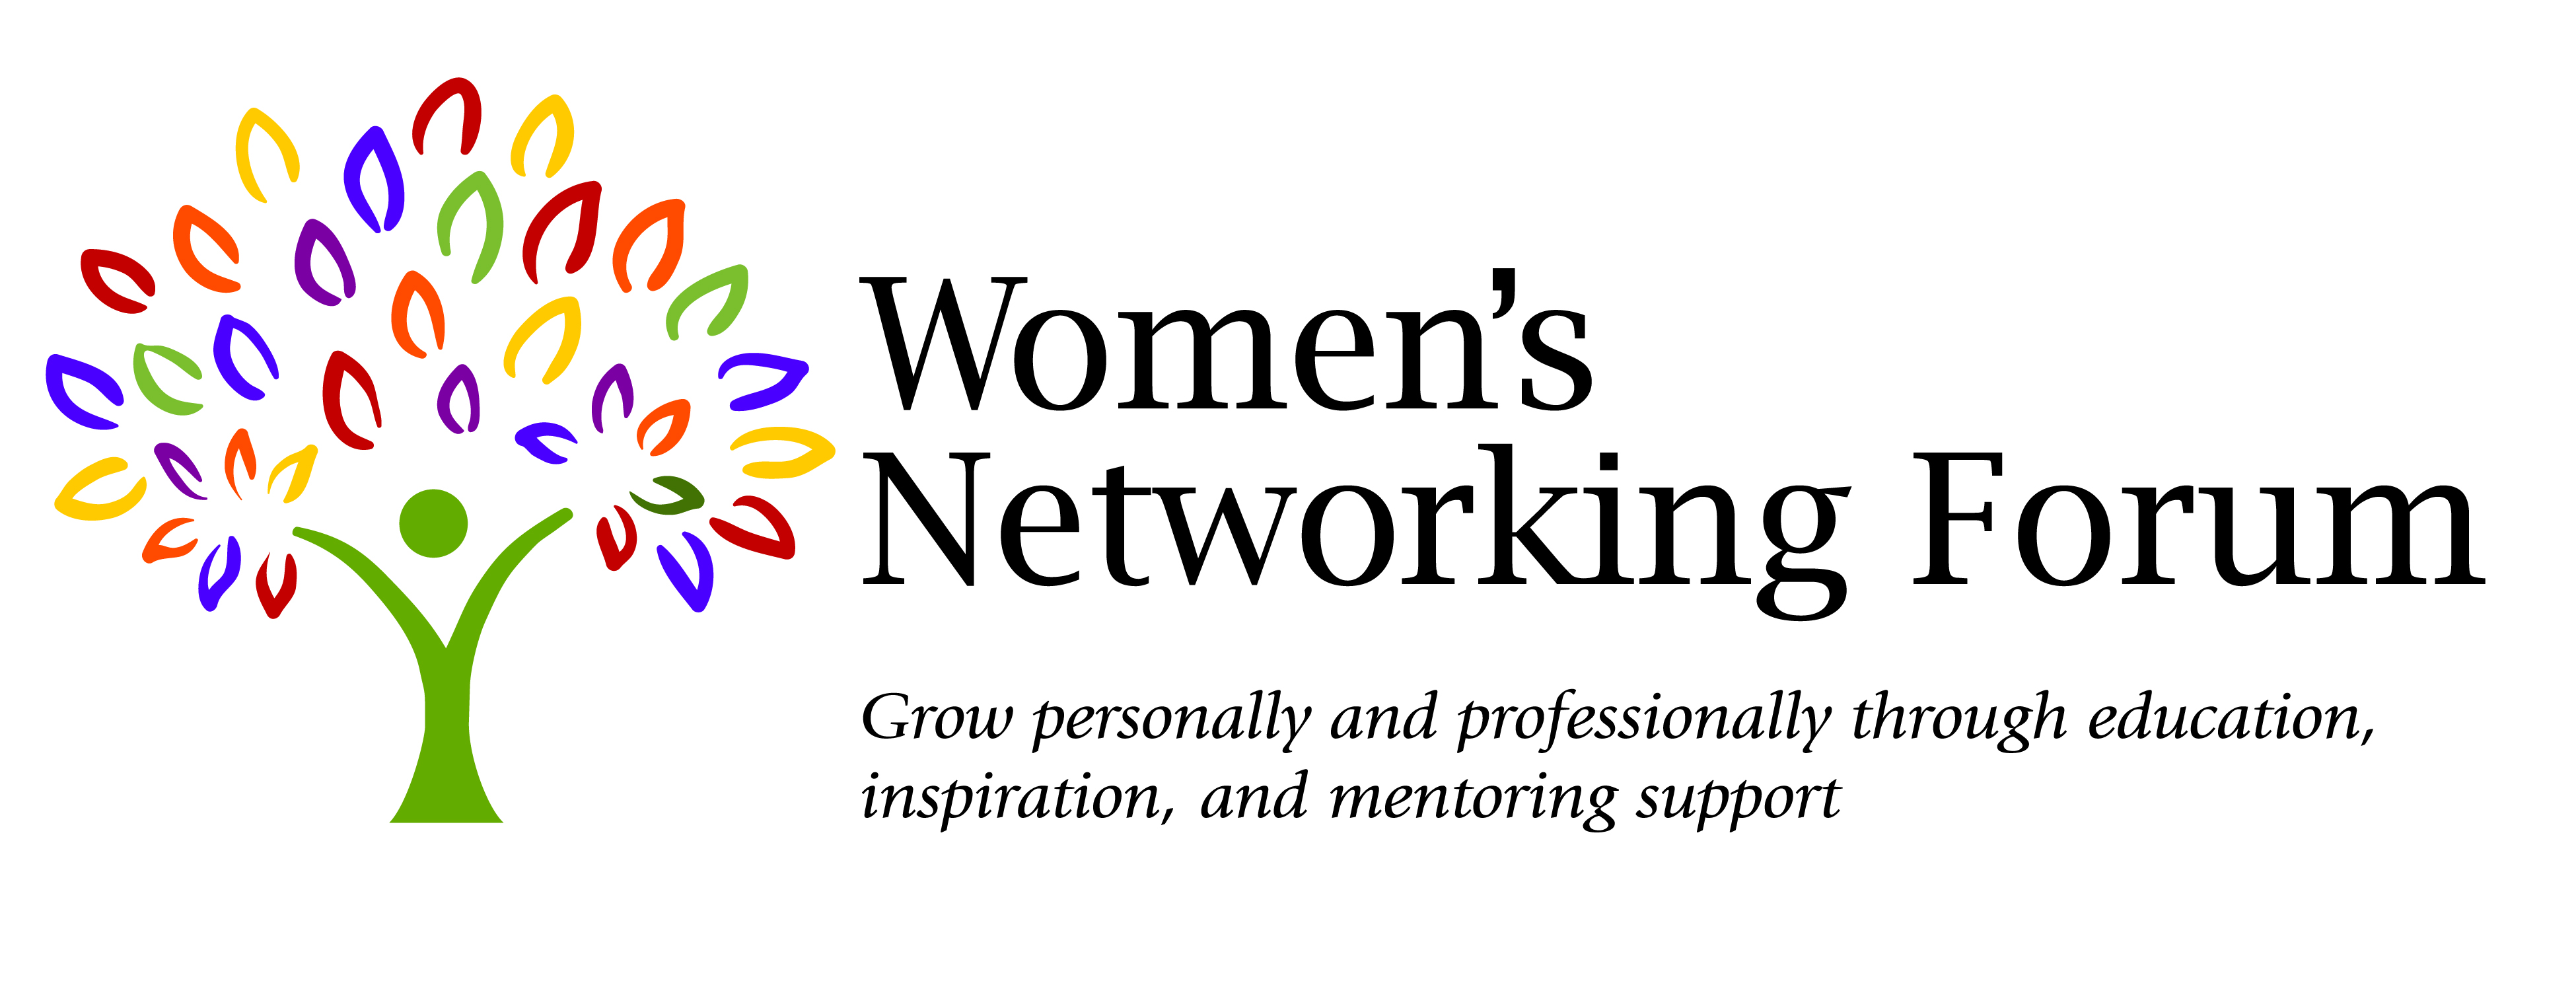 women s networking forum effective networking strategies for join us for a fun evening of networking our keynote speaker deb neuman will share her networking expertise on